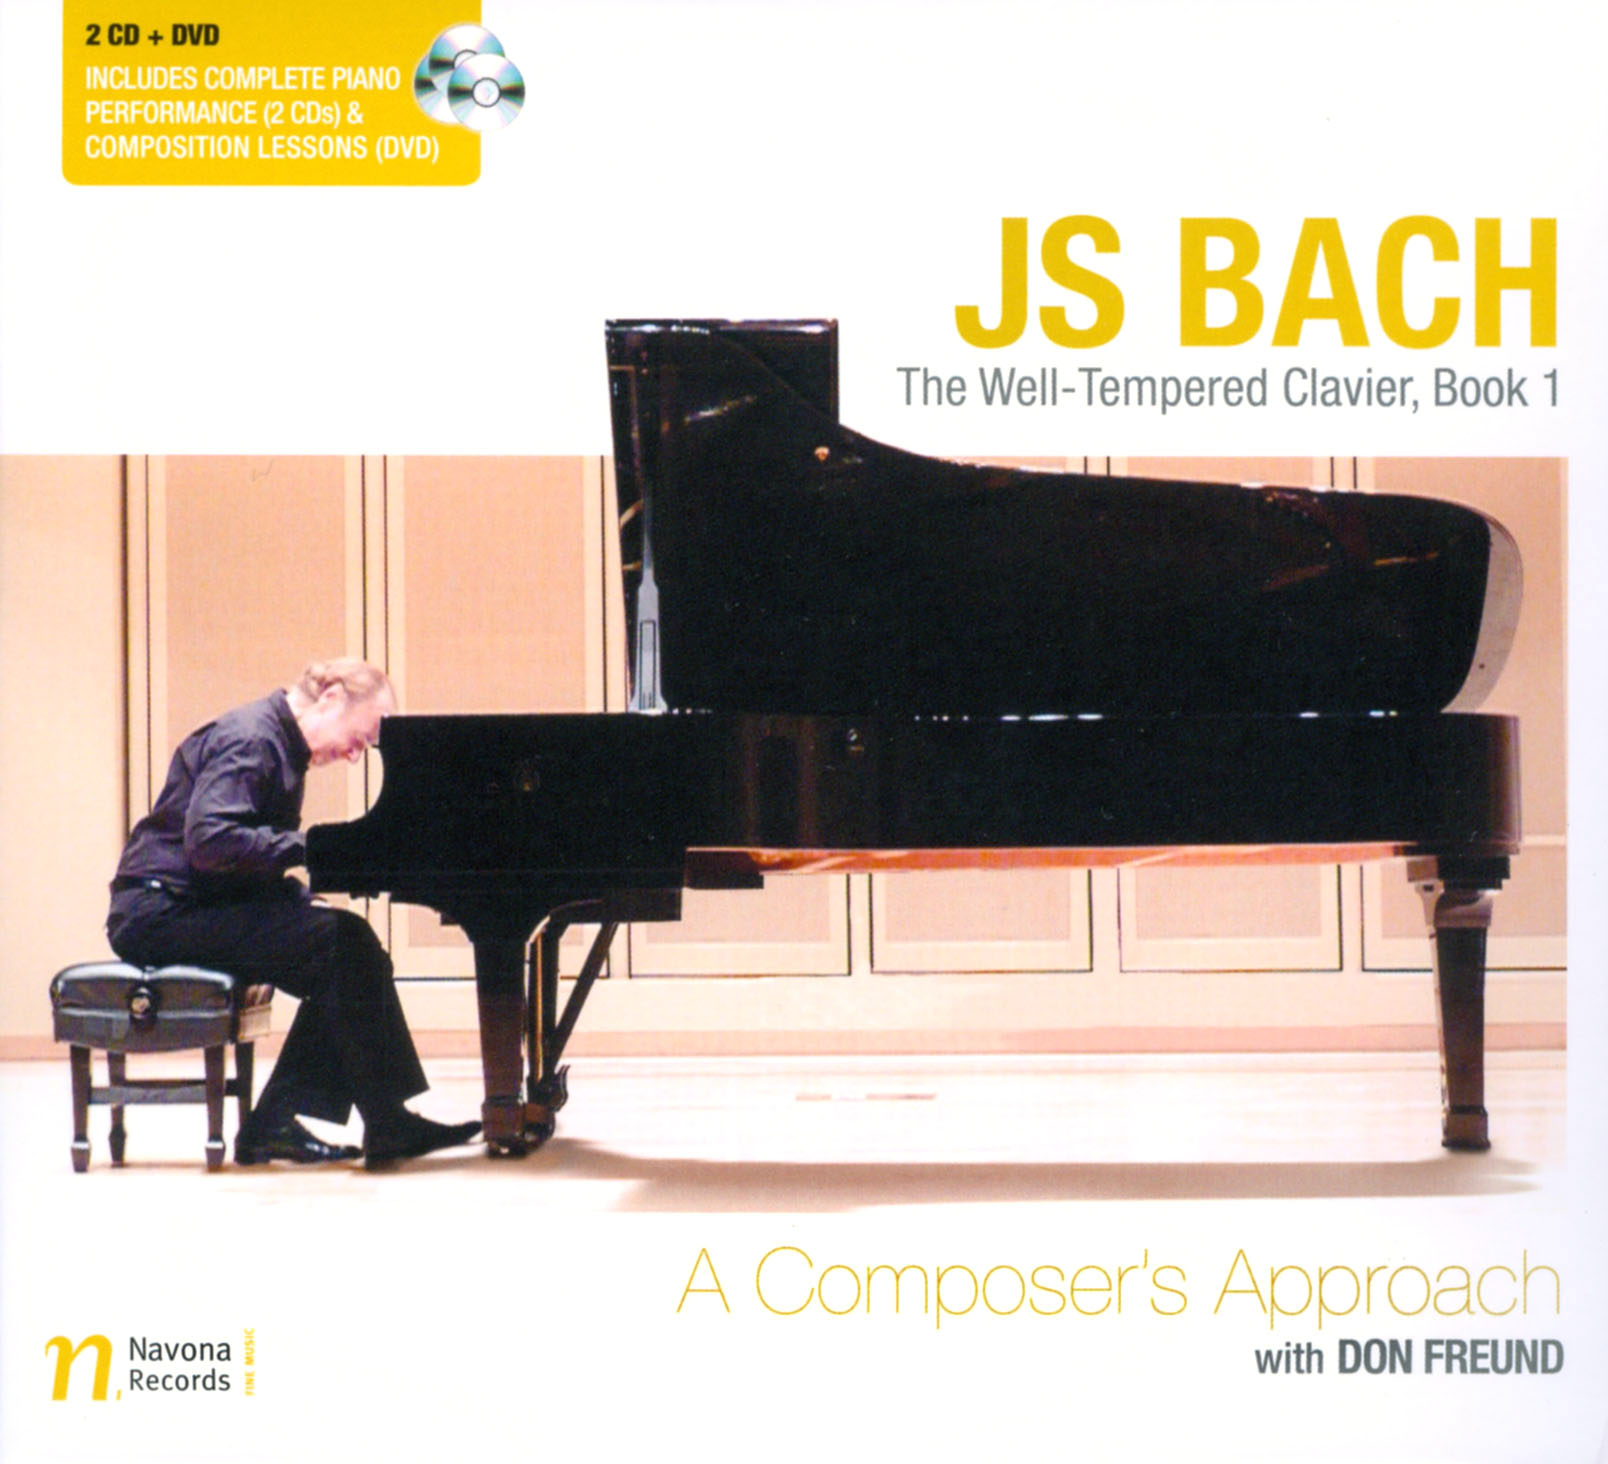 Don Freund: Composition Lessons with JS Bach - A Composer's Approach